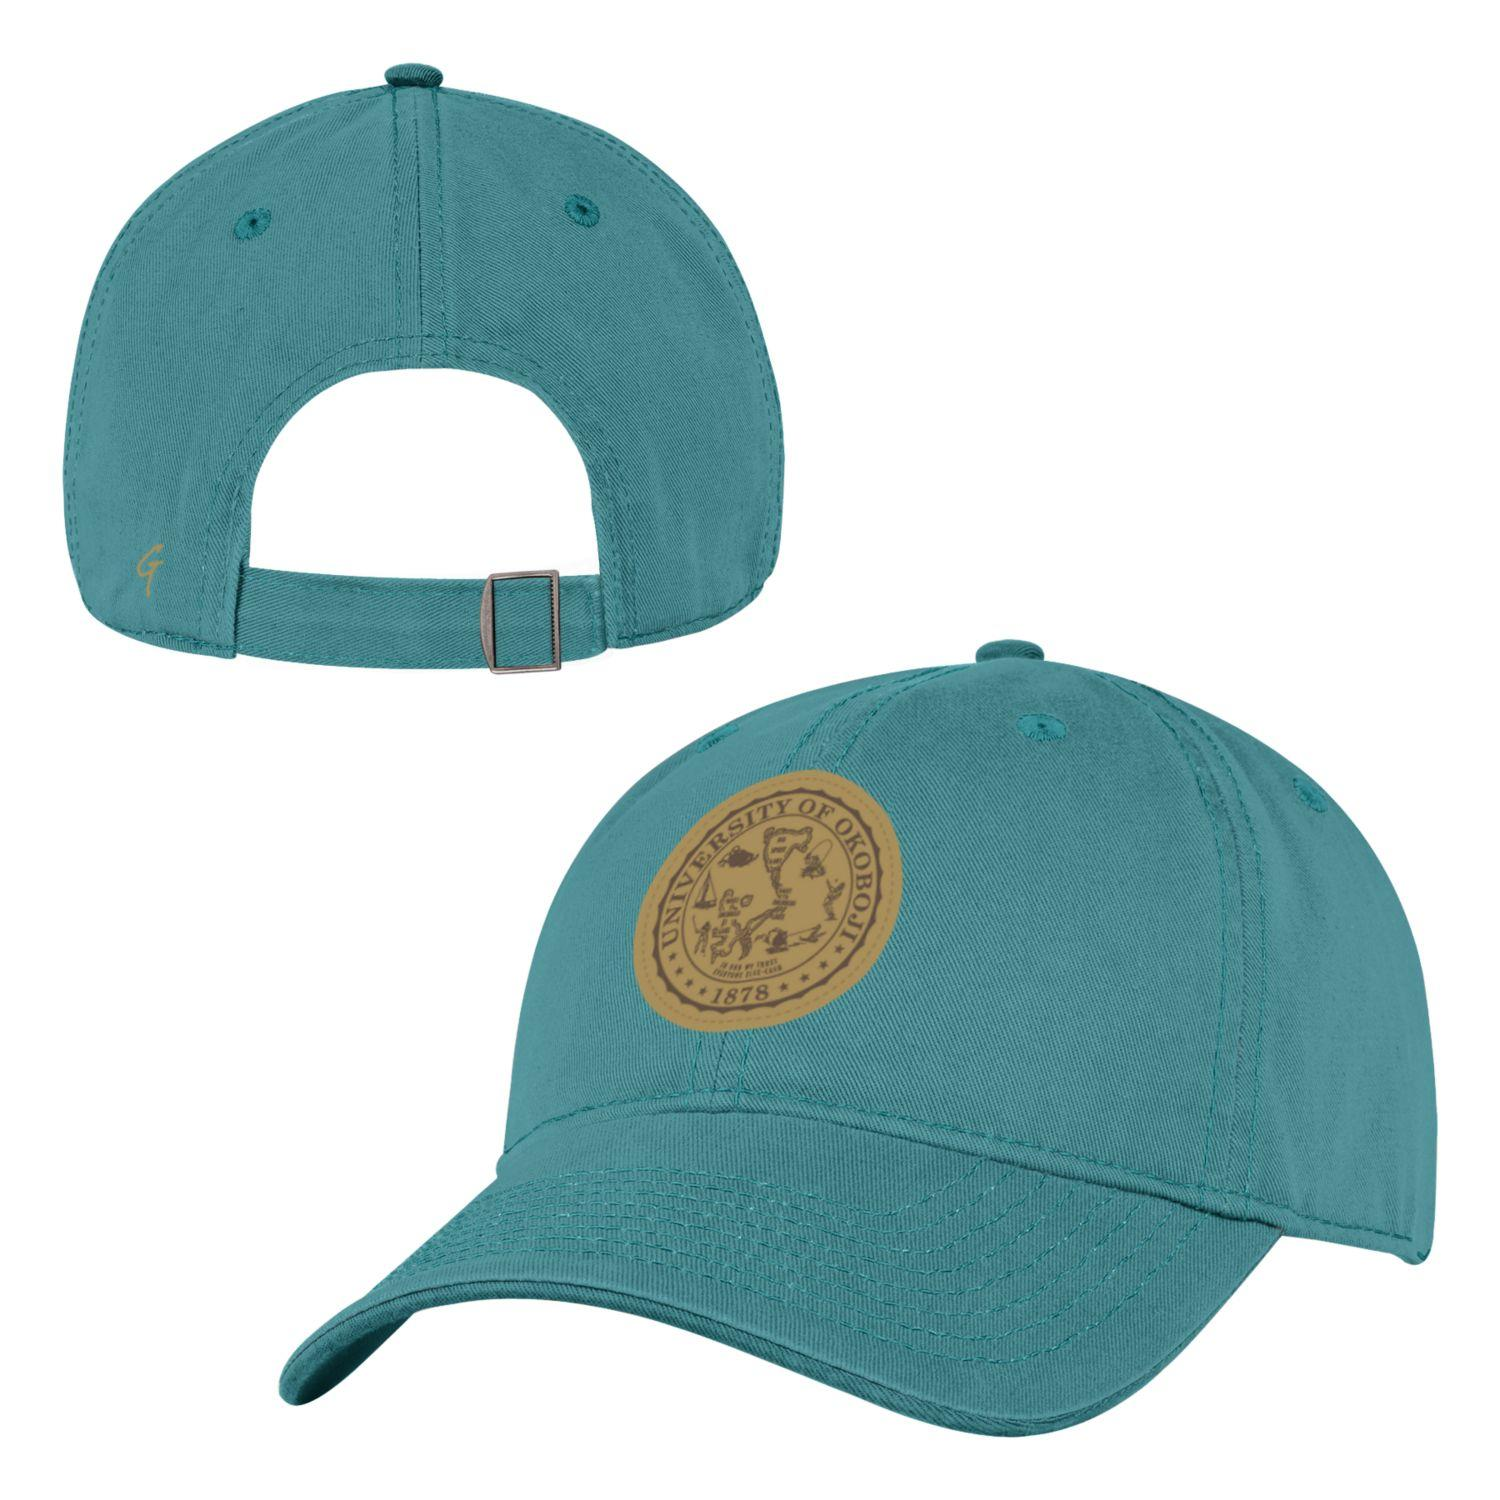 University of Okoboji Patch Cap - Aqua